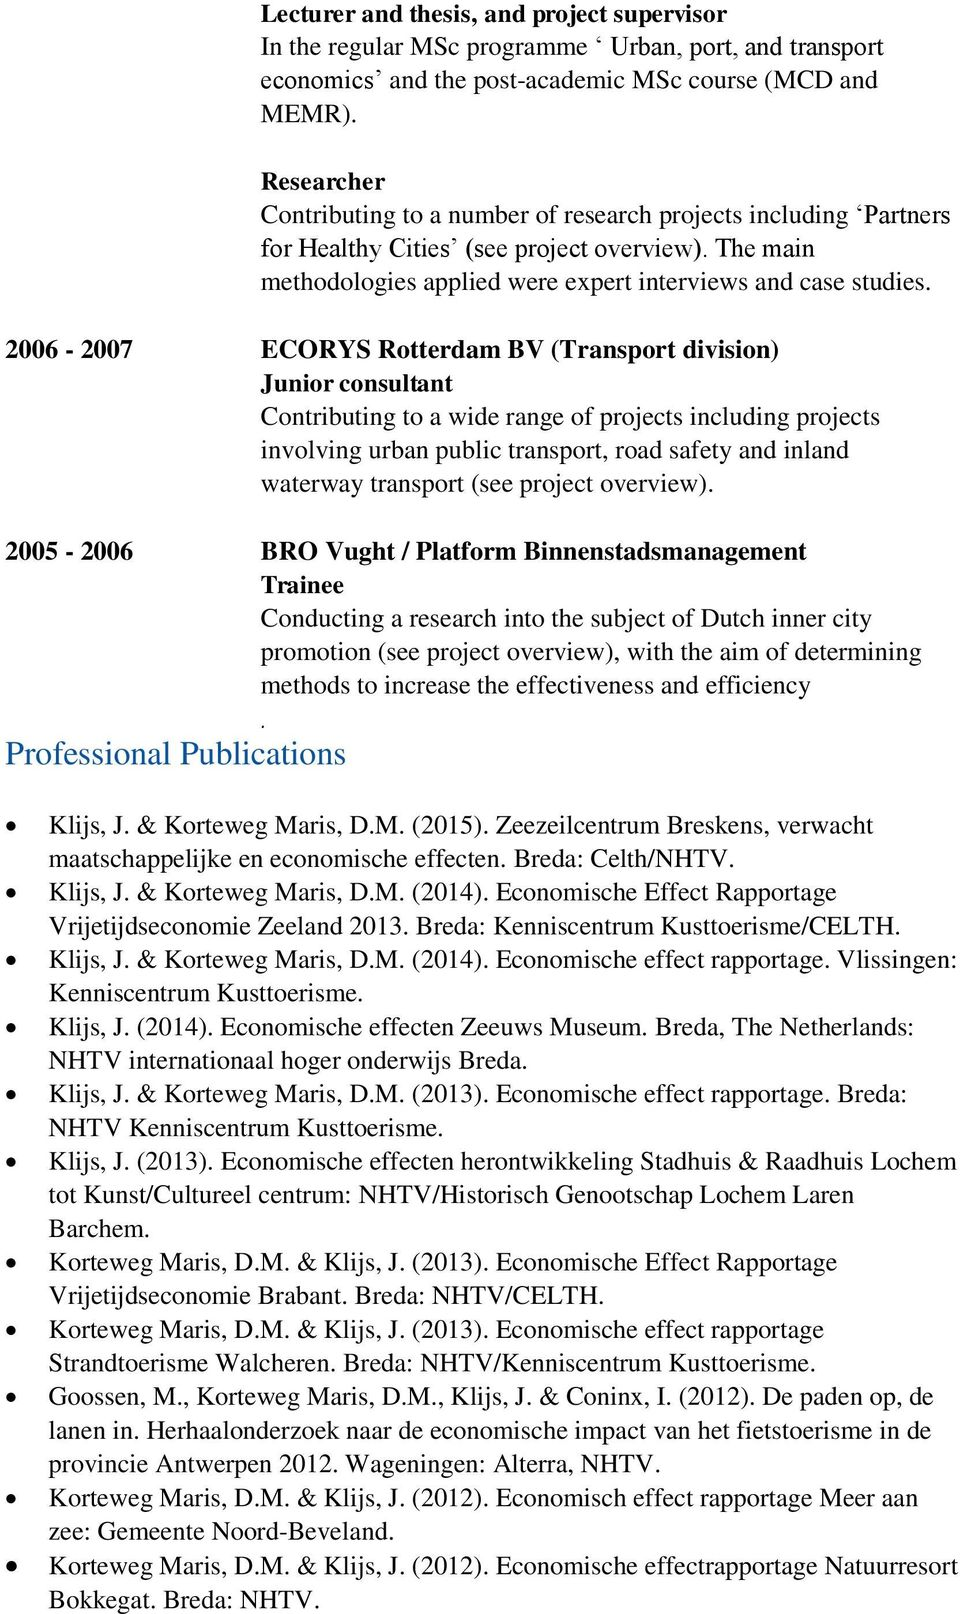 2006-2007 ECORYS Rotterdam BV (Transport division) Junior consultant Contributing to a wide range of projects including projects involving urban public transport, road safety and inland waterway